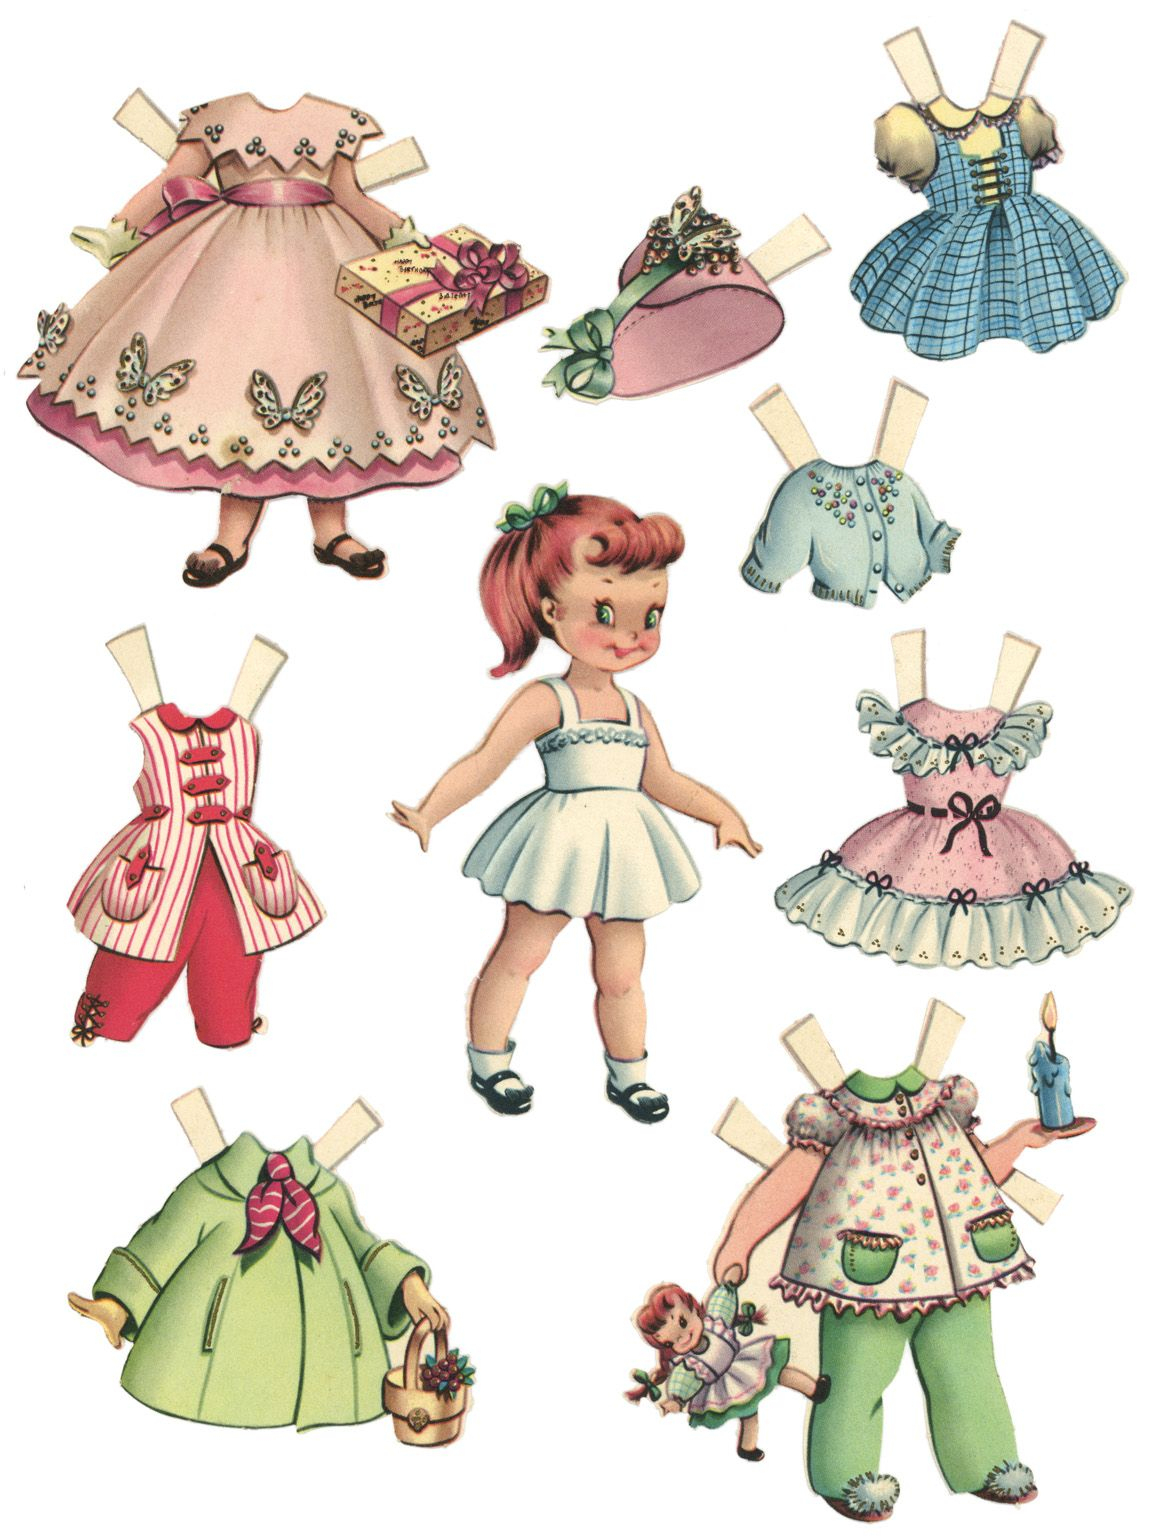 10 Free Printable Paper Dolls | Everyone Needs A Toy :) | Pinterest - Free Printable Paper Dolls